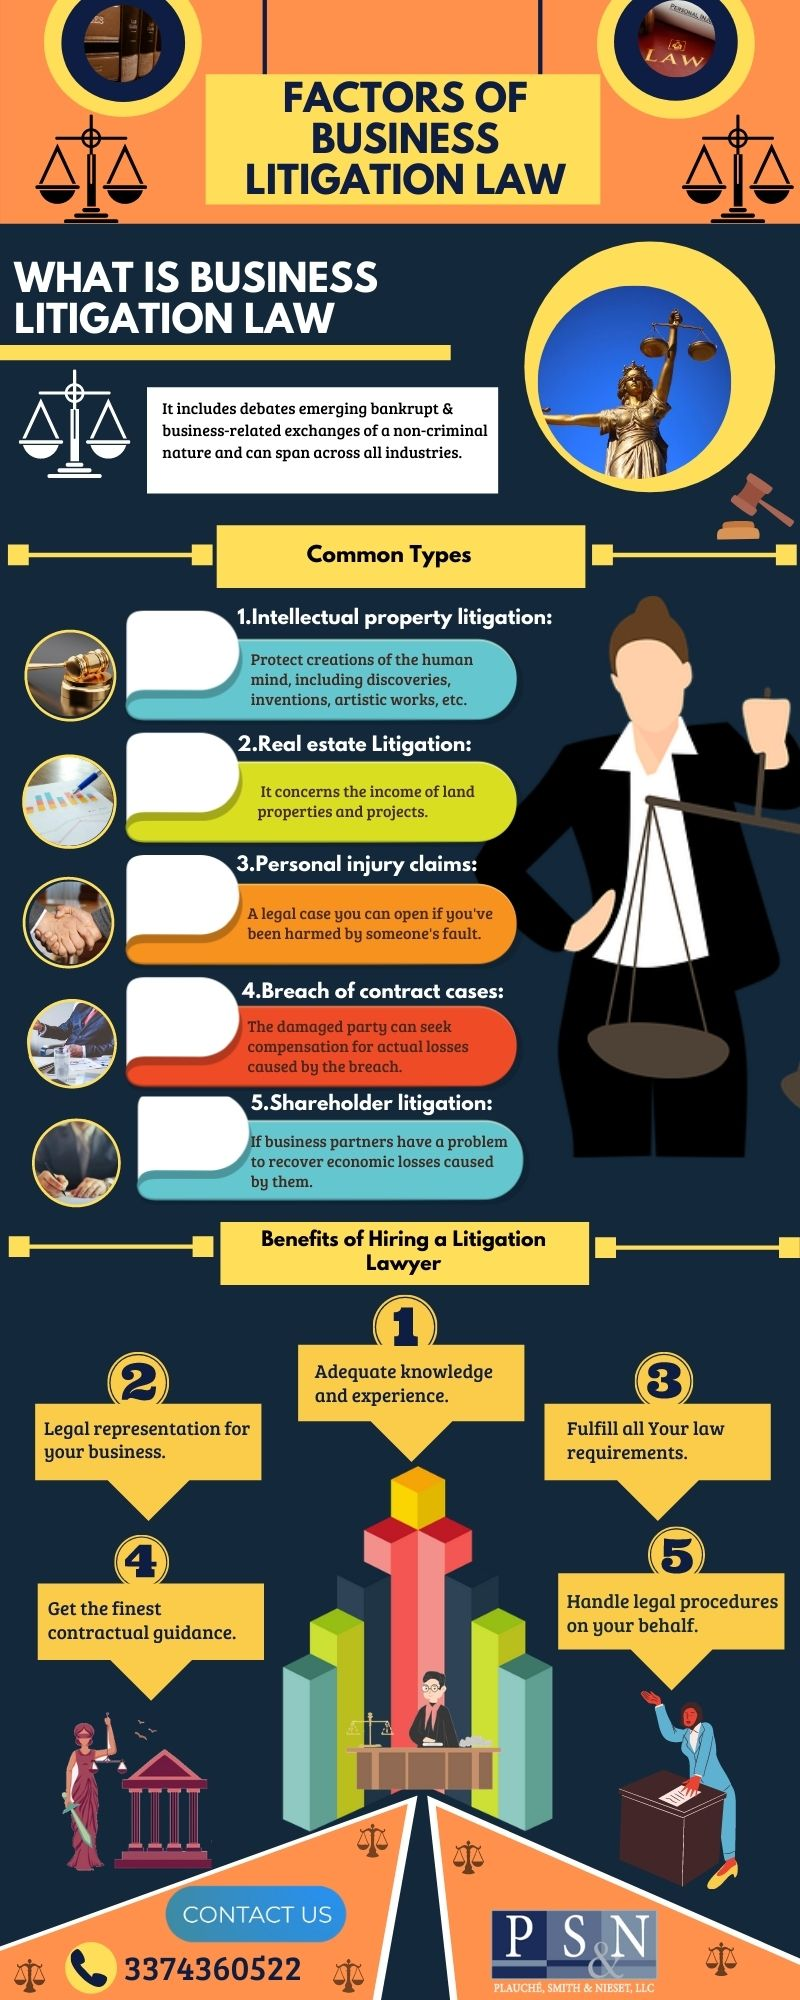 Dedicated Business Litigation Lawyers for Your Claims